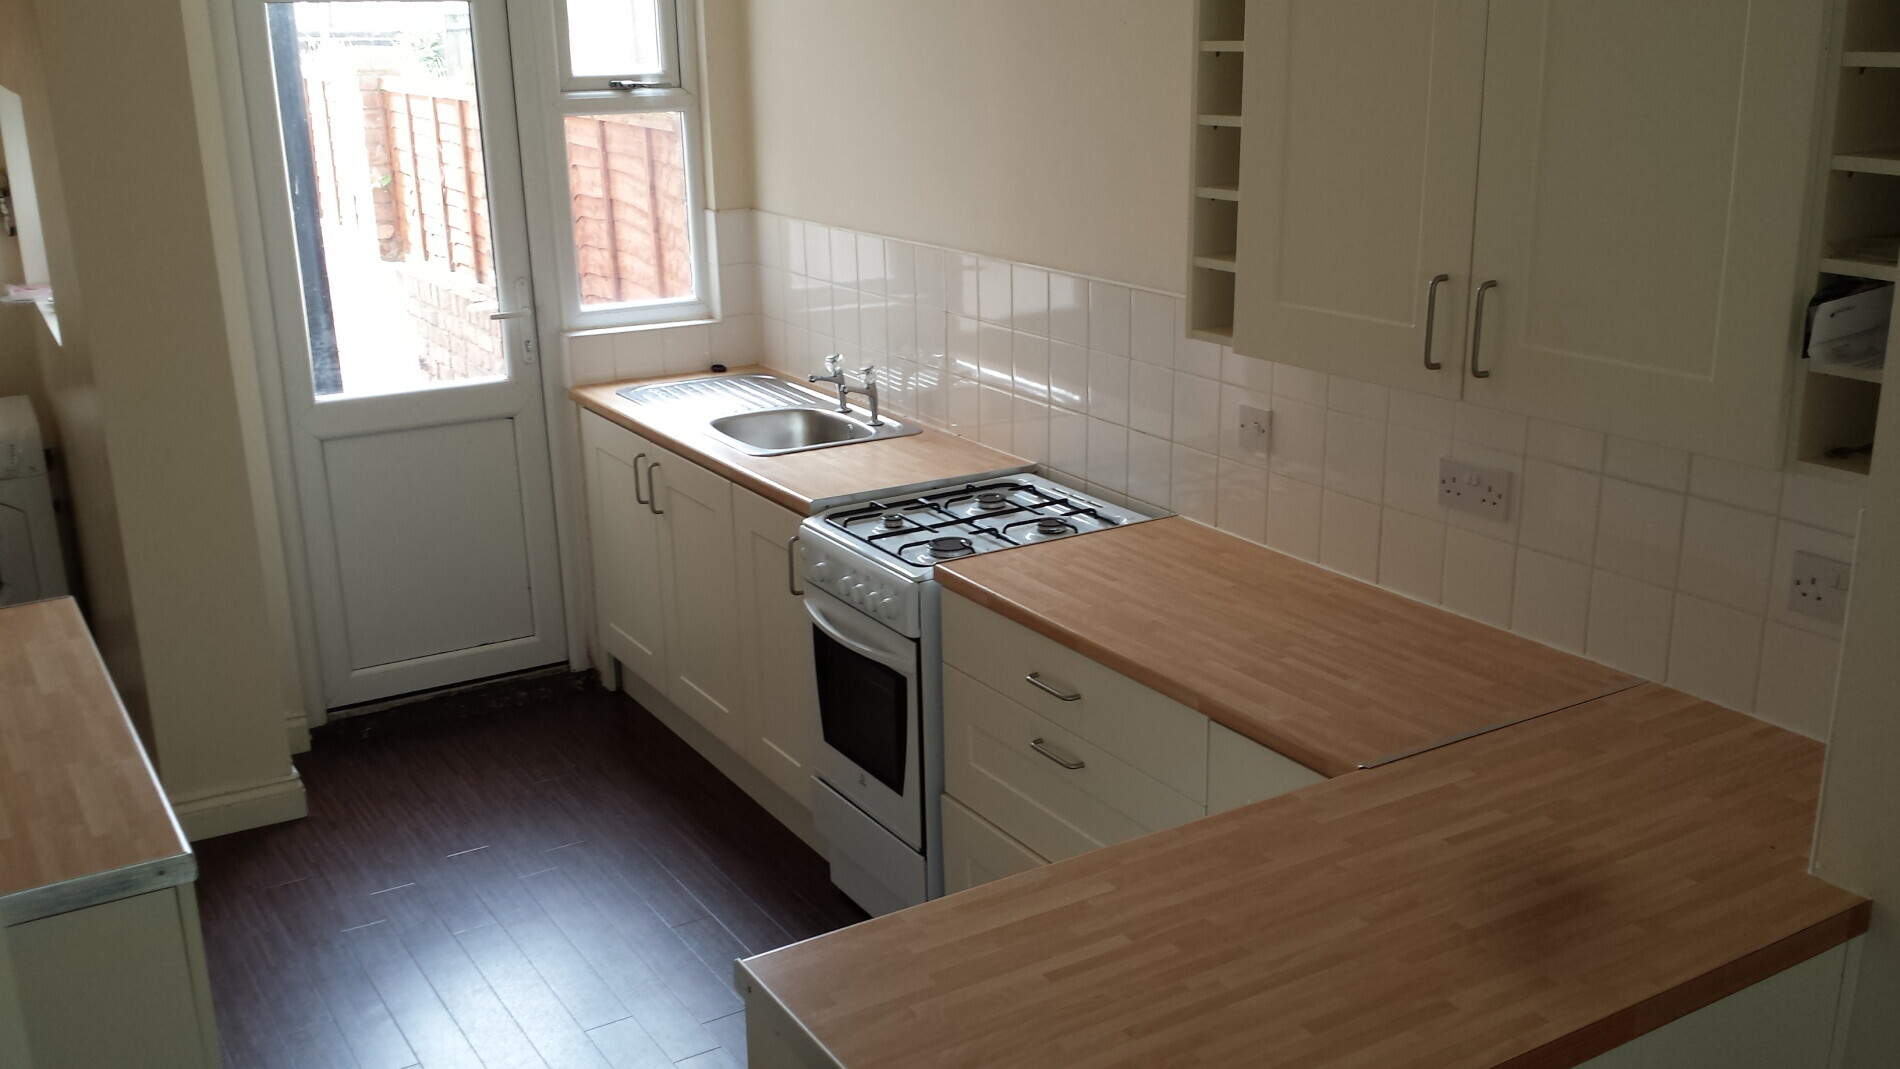 3 bedroom student house in Chapelfields, Coventry